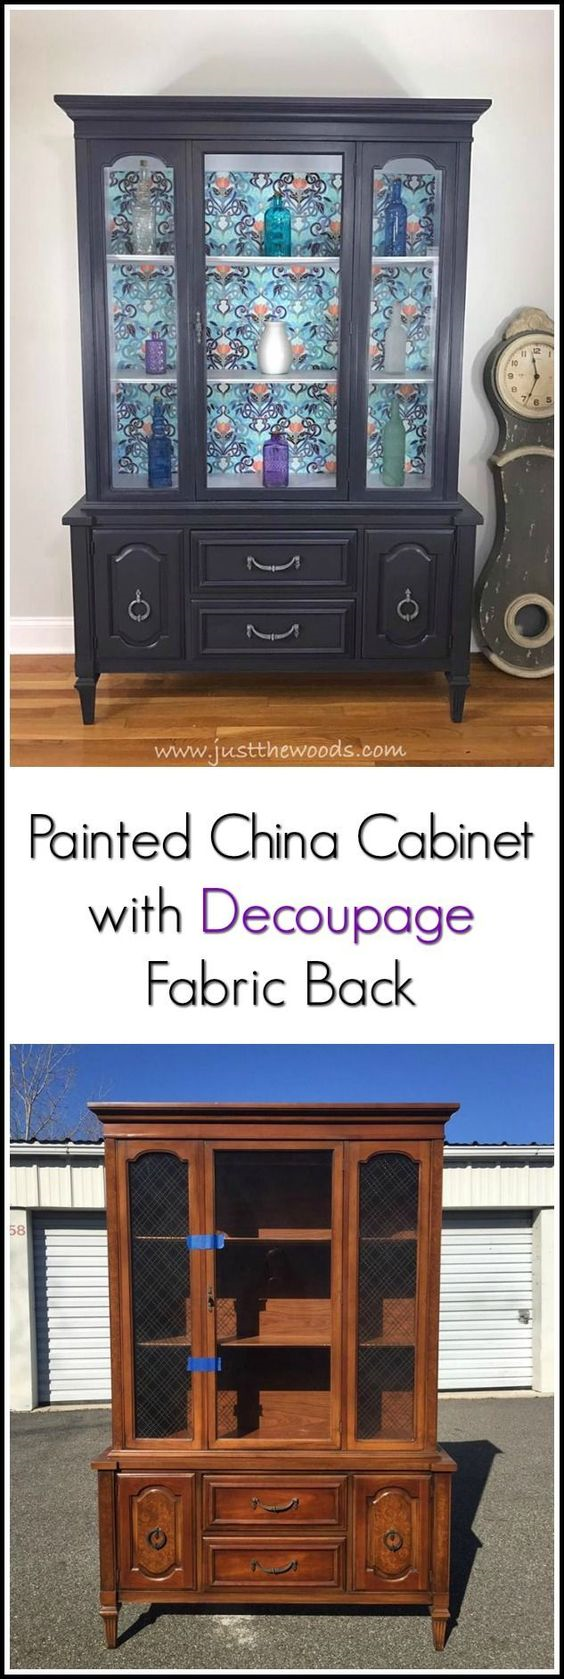 30 Farmhouse Furniture Makeovers - Painted hutch - Life on Kaydeross Creek